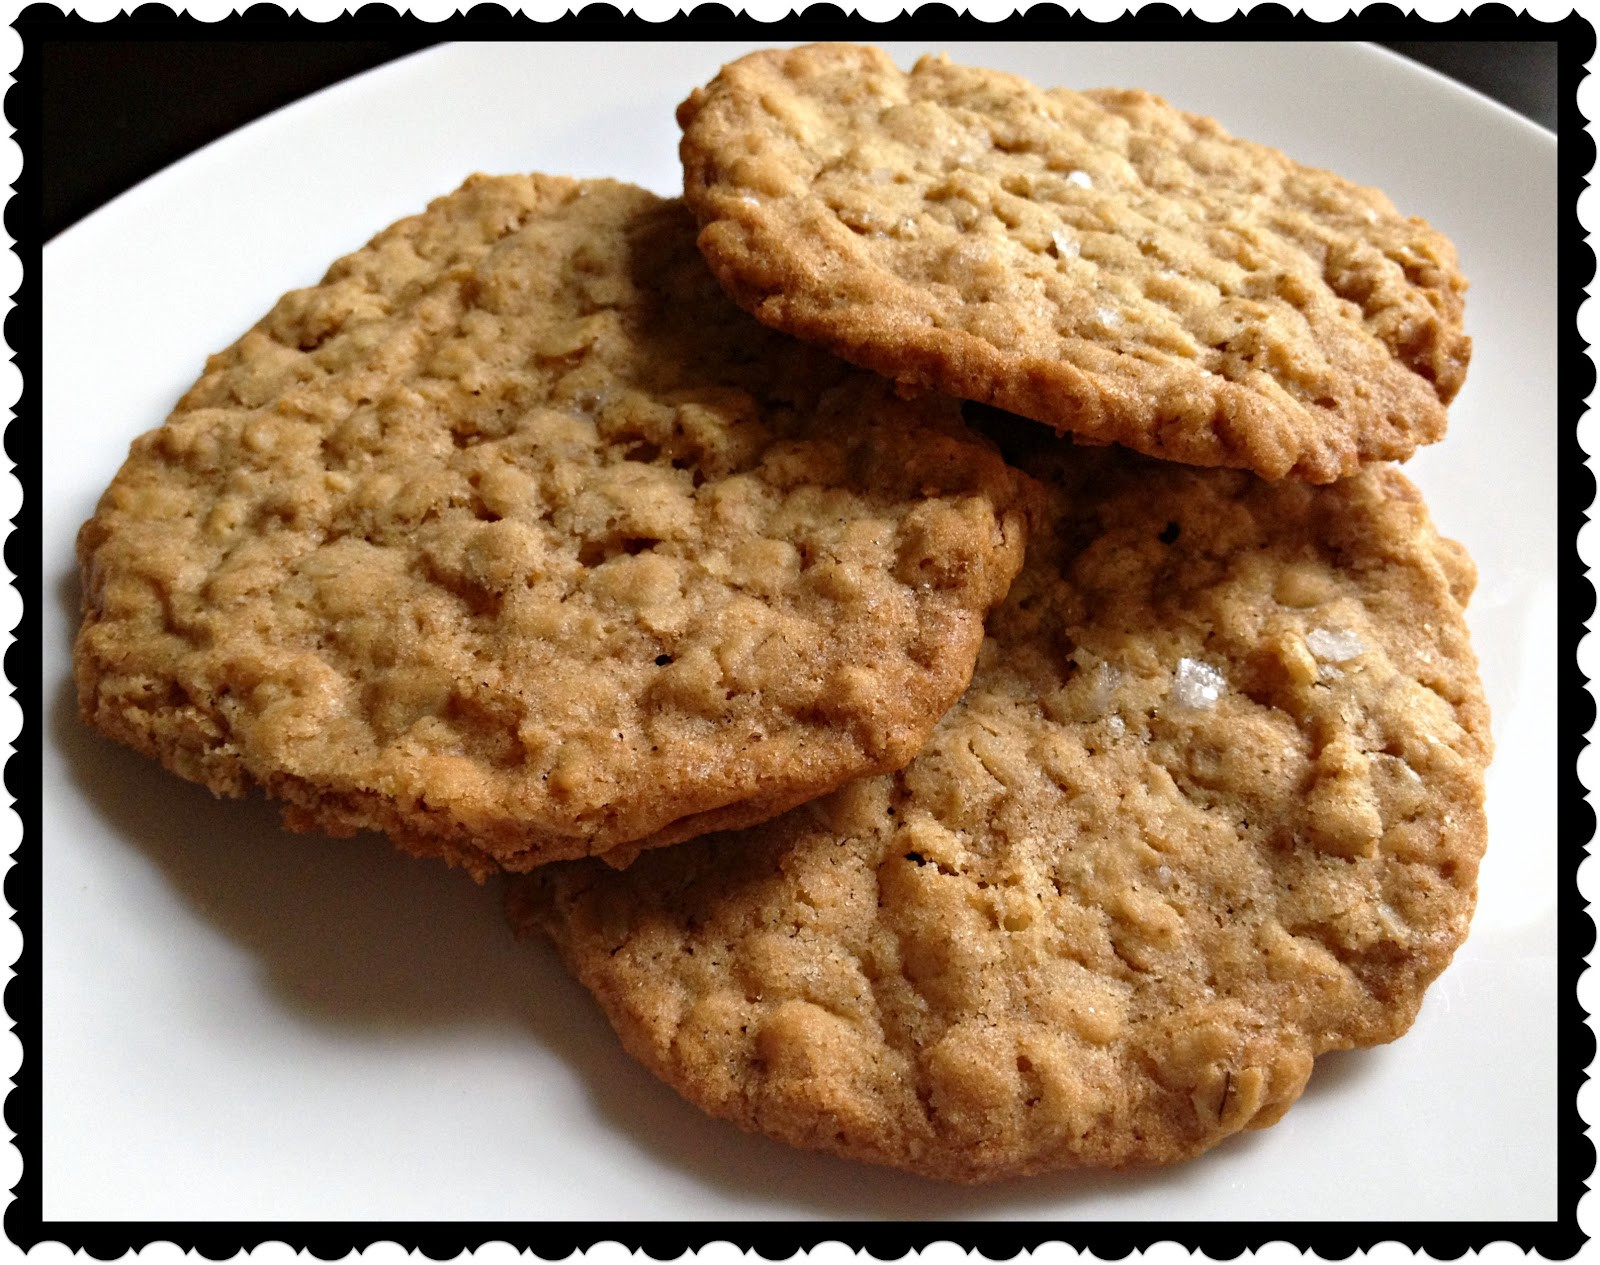 Crispy Oatmeal Cookies  A Girl And Her Fork Crispy Oatmeal Cookies with Maldon Salt